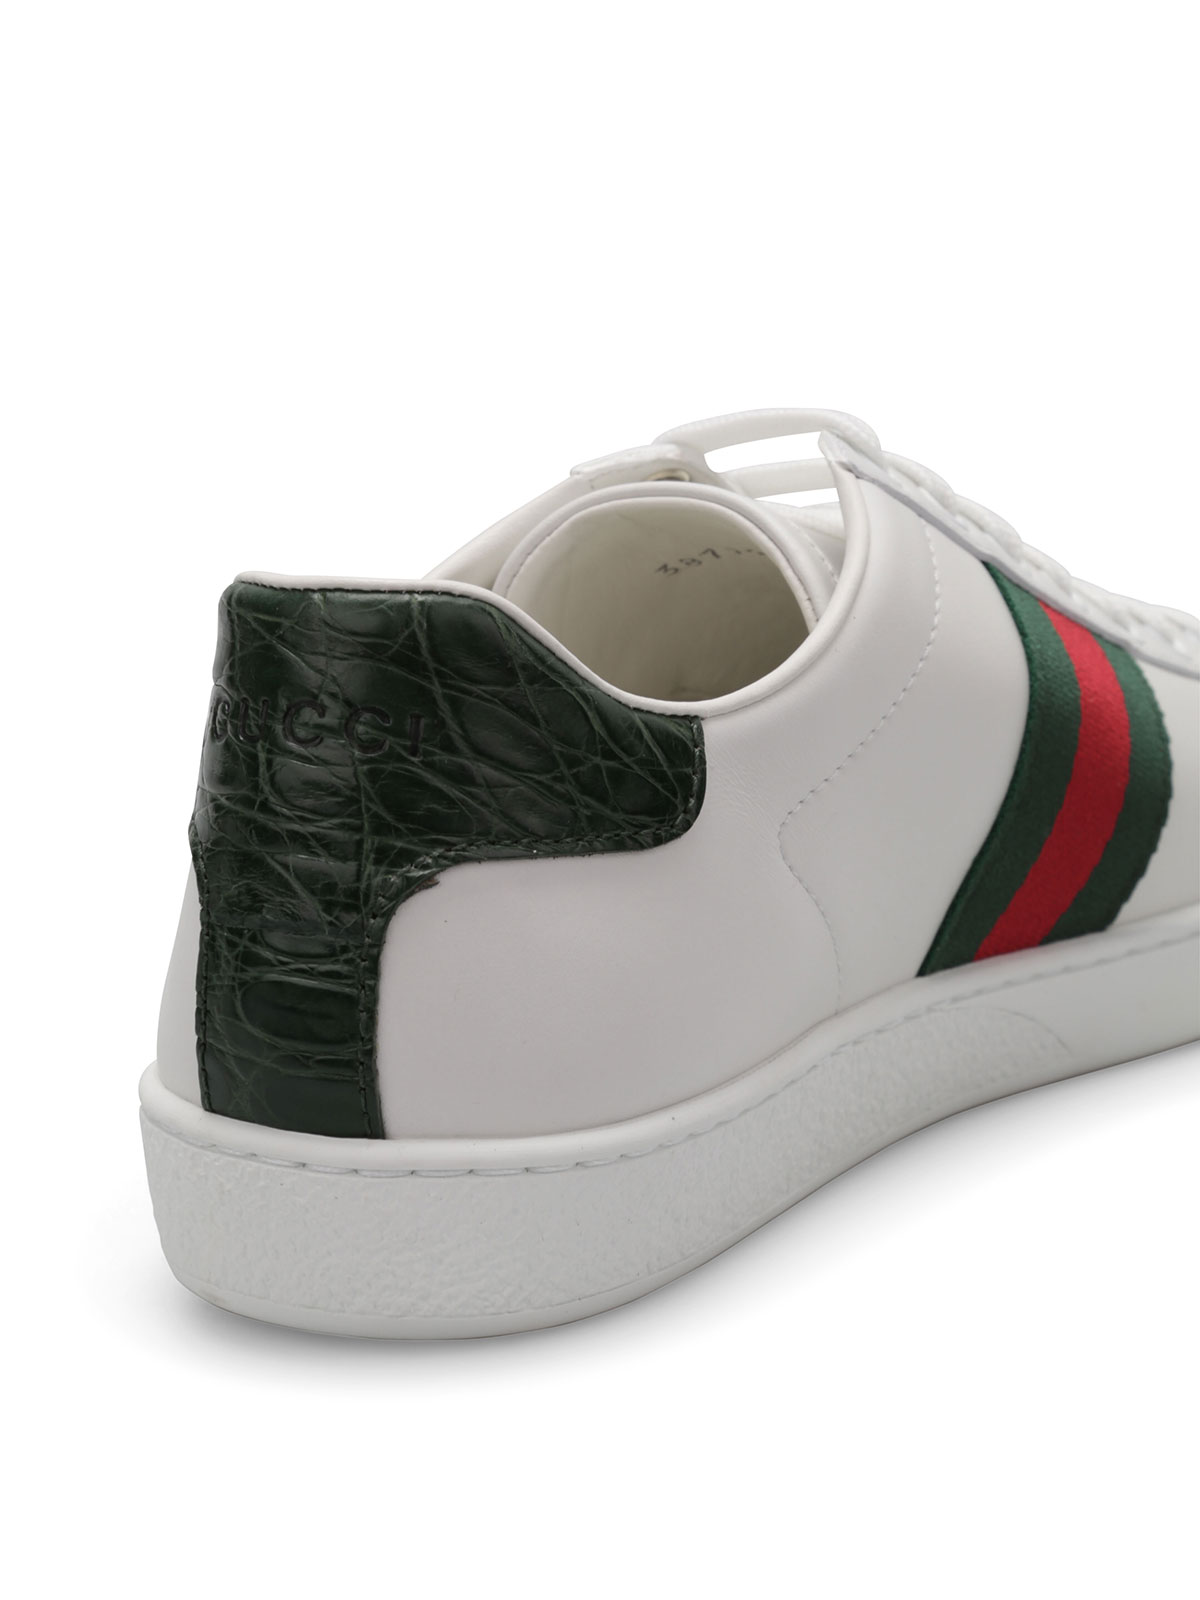 crocodile sneakers by gucci trainers ikrix. Black Bedroom Furniture Sets. Home Design Ideas